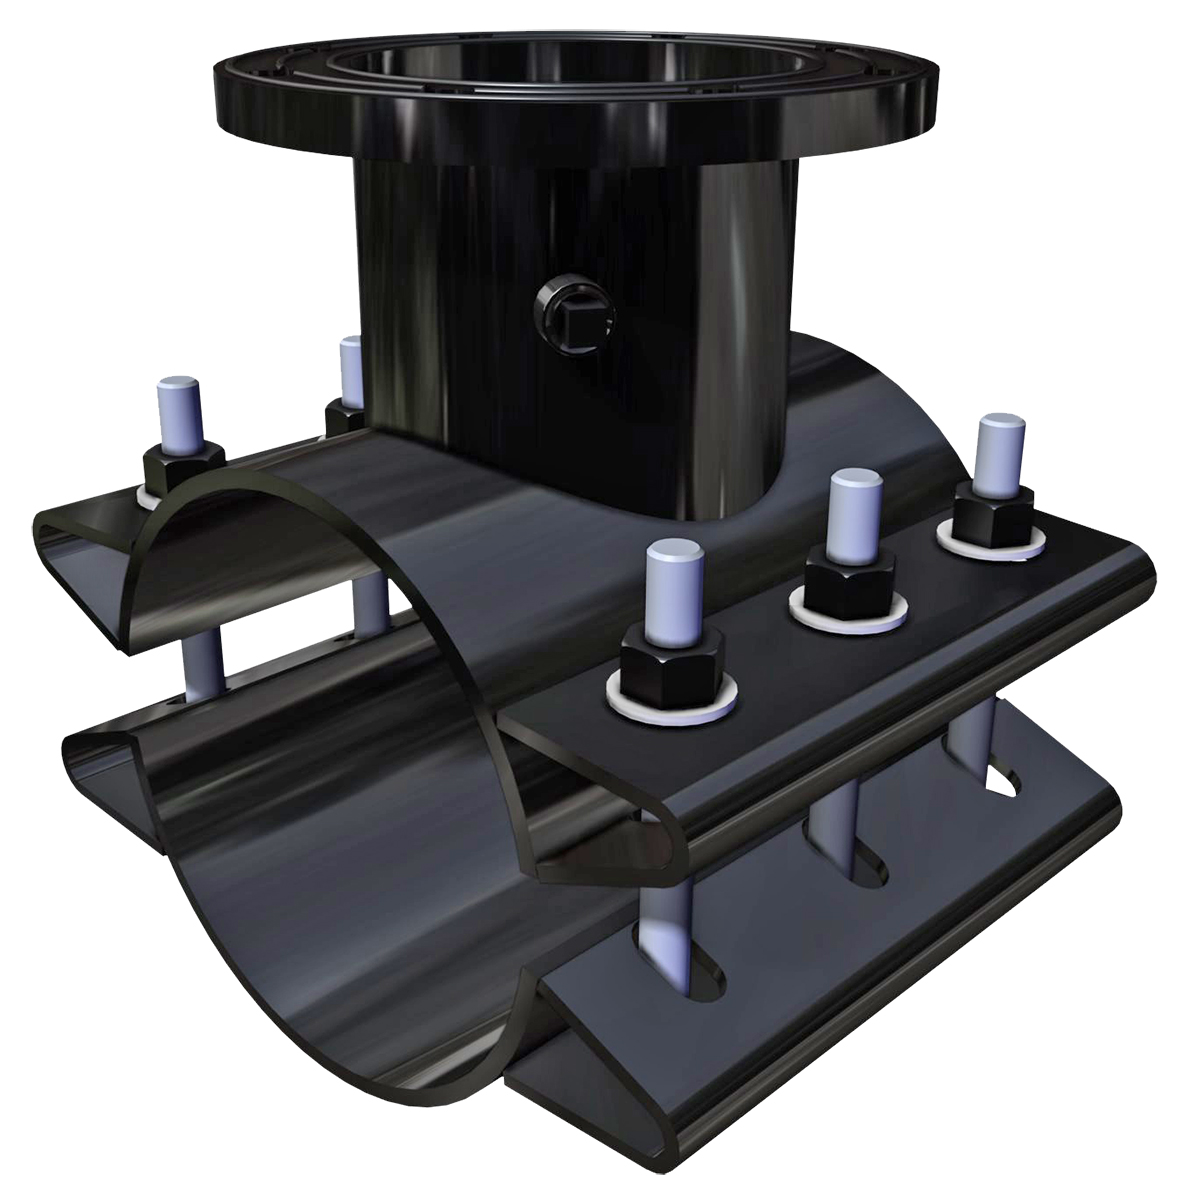 FTS420 - Fabricated steel tapping sleeve with drop-in bolts